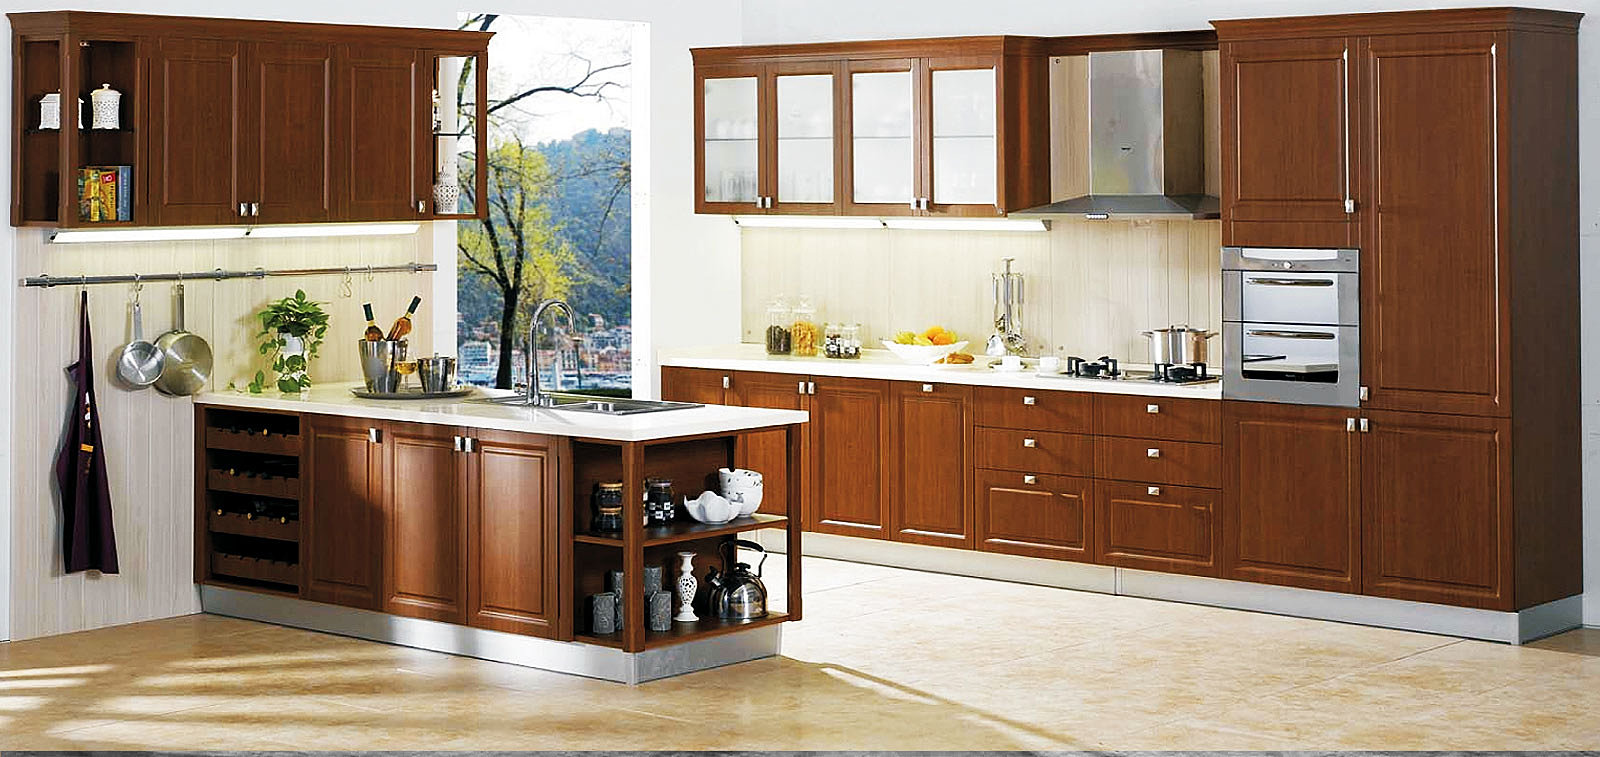 venezia stainless steel finish modular kitchens kerala